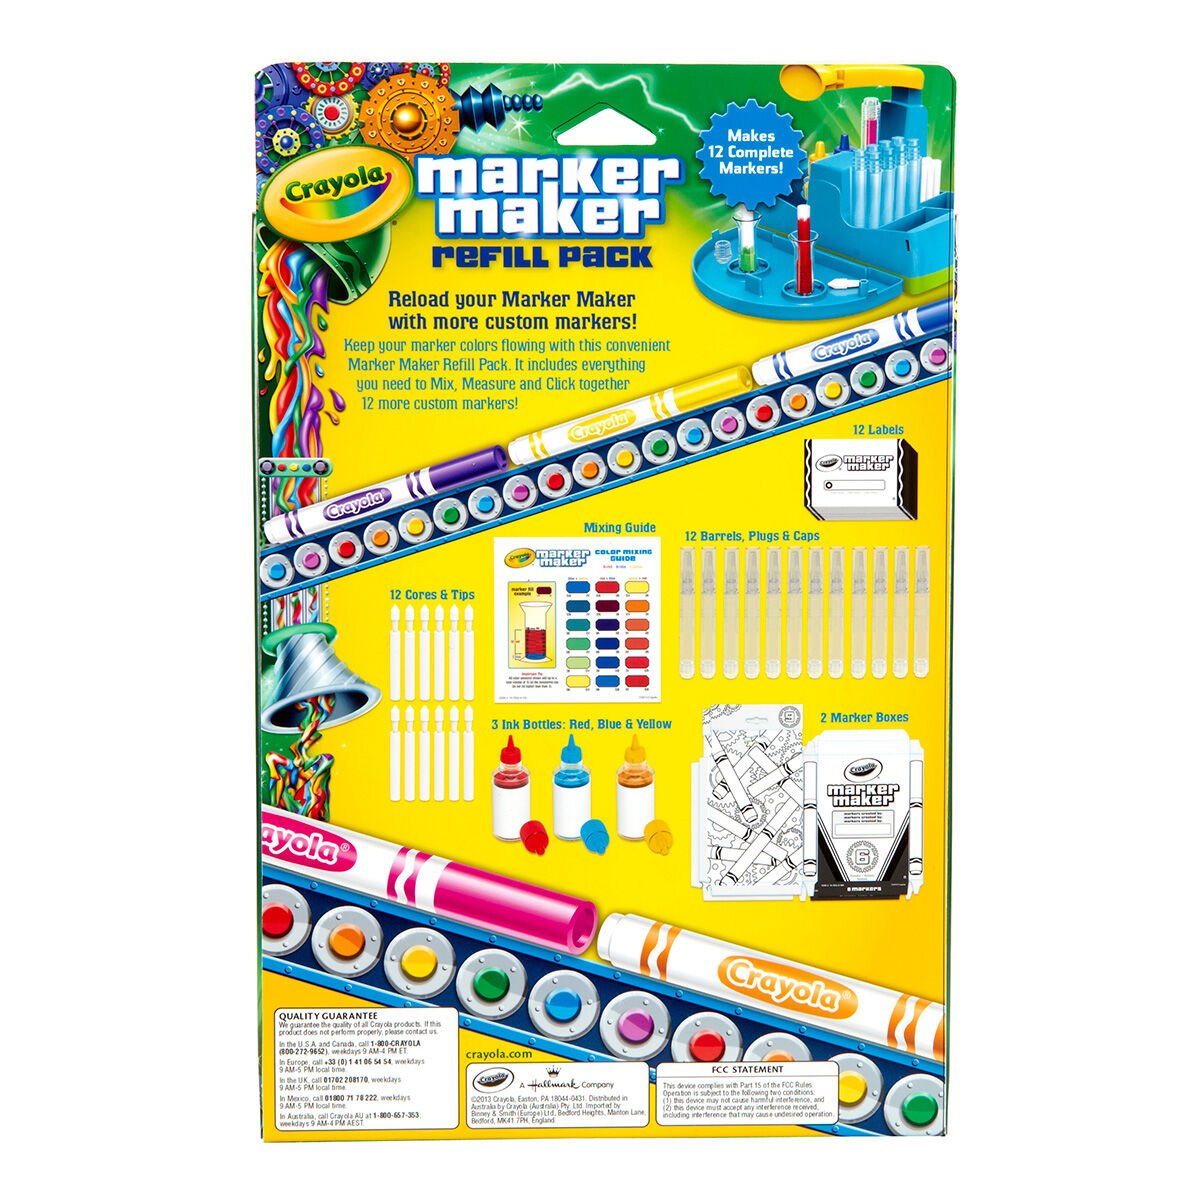 Marker Maker Unit and Refill Pack Crayola